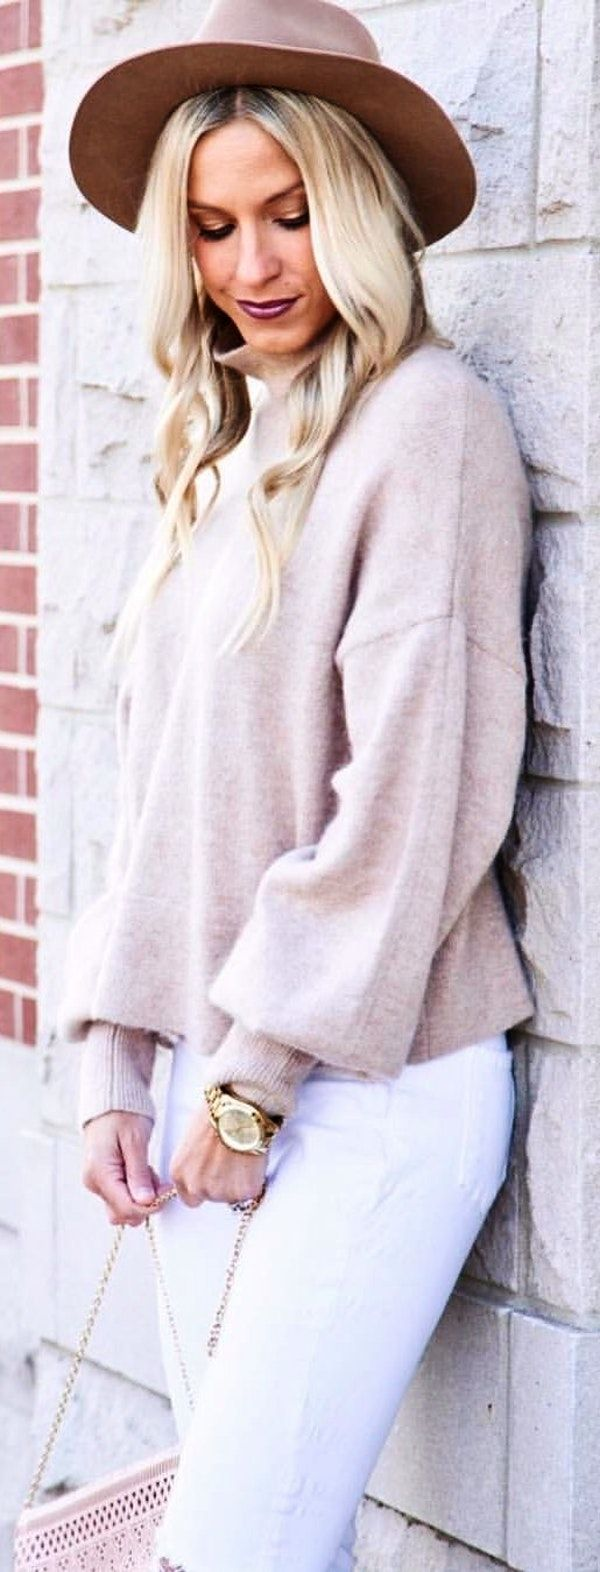 100+ Cute Outfit Ideas To Wear This Winter